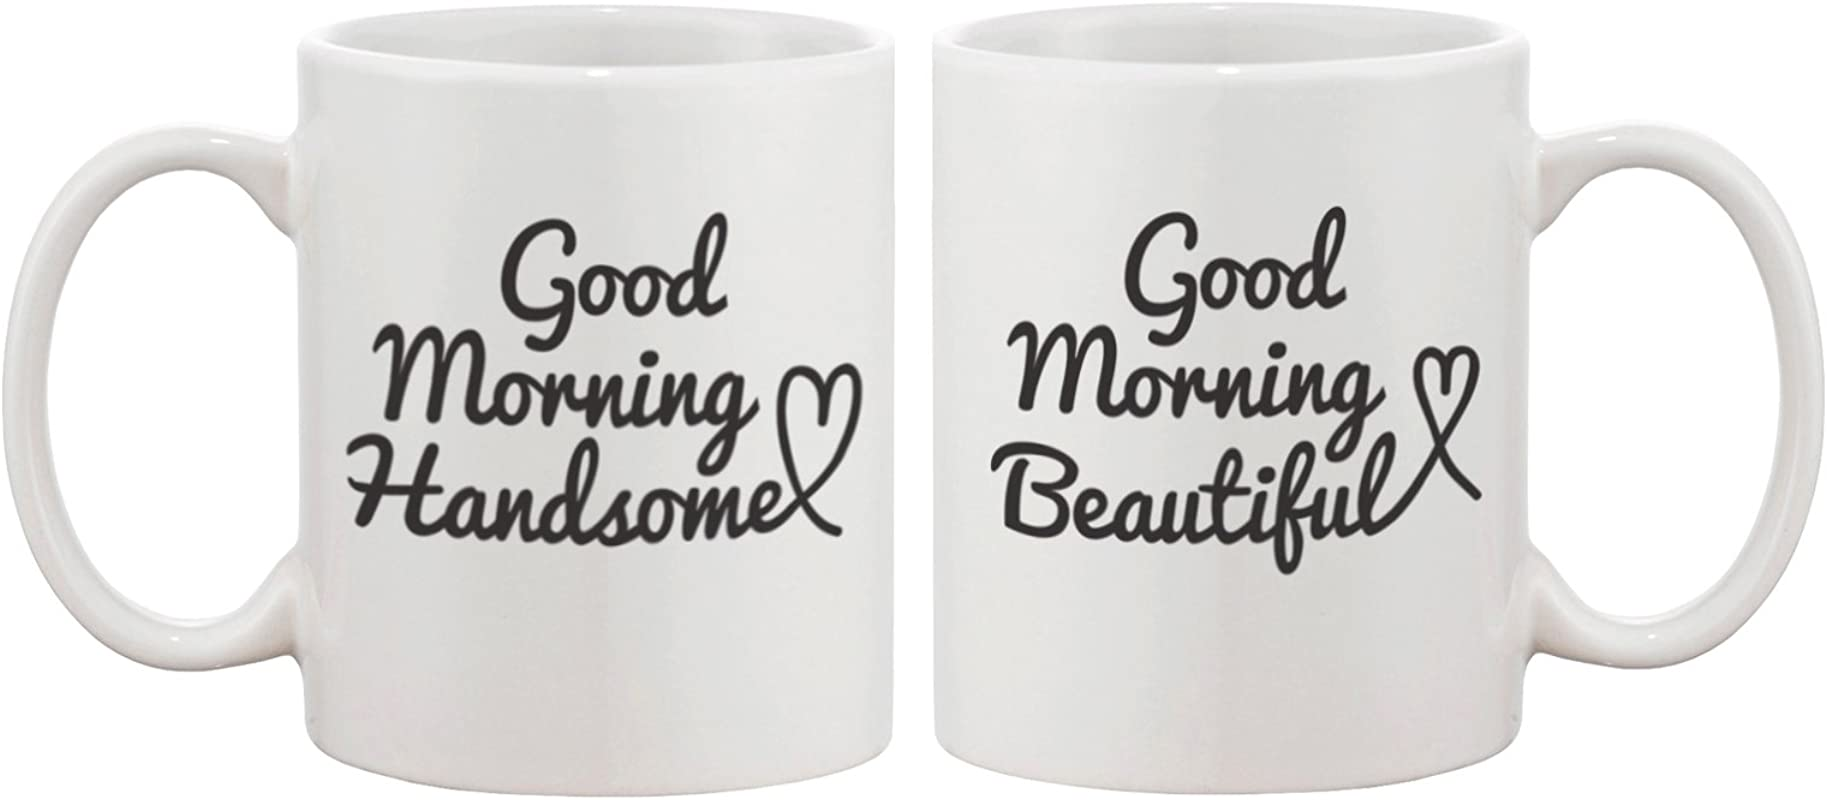 His And Hers Coffee Mug Set Good Morning Handsome Good Morning Beautiful Perfect Wedding Engagement Anniversary And Bridal Shower Gift For Newlyweds